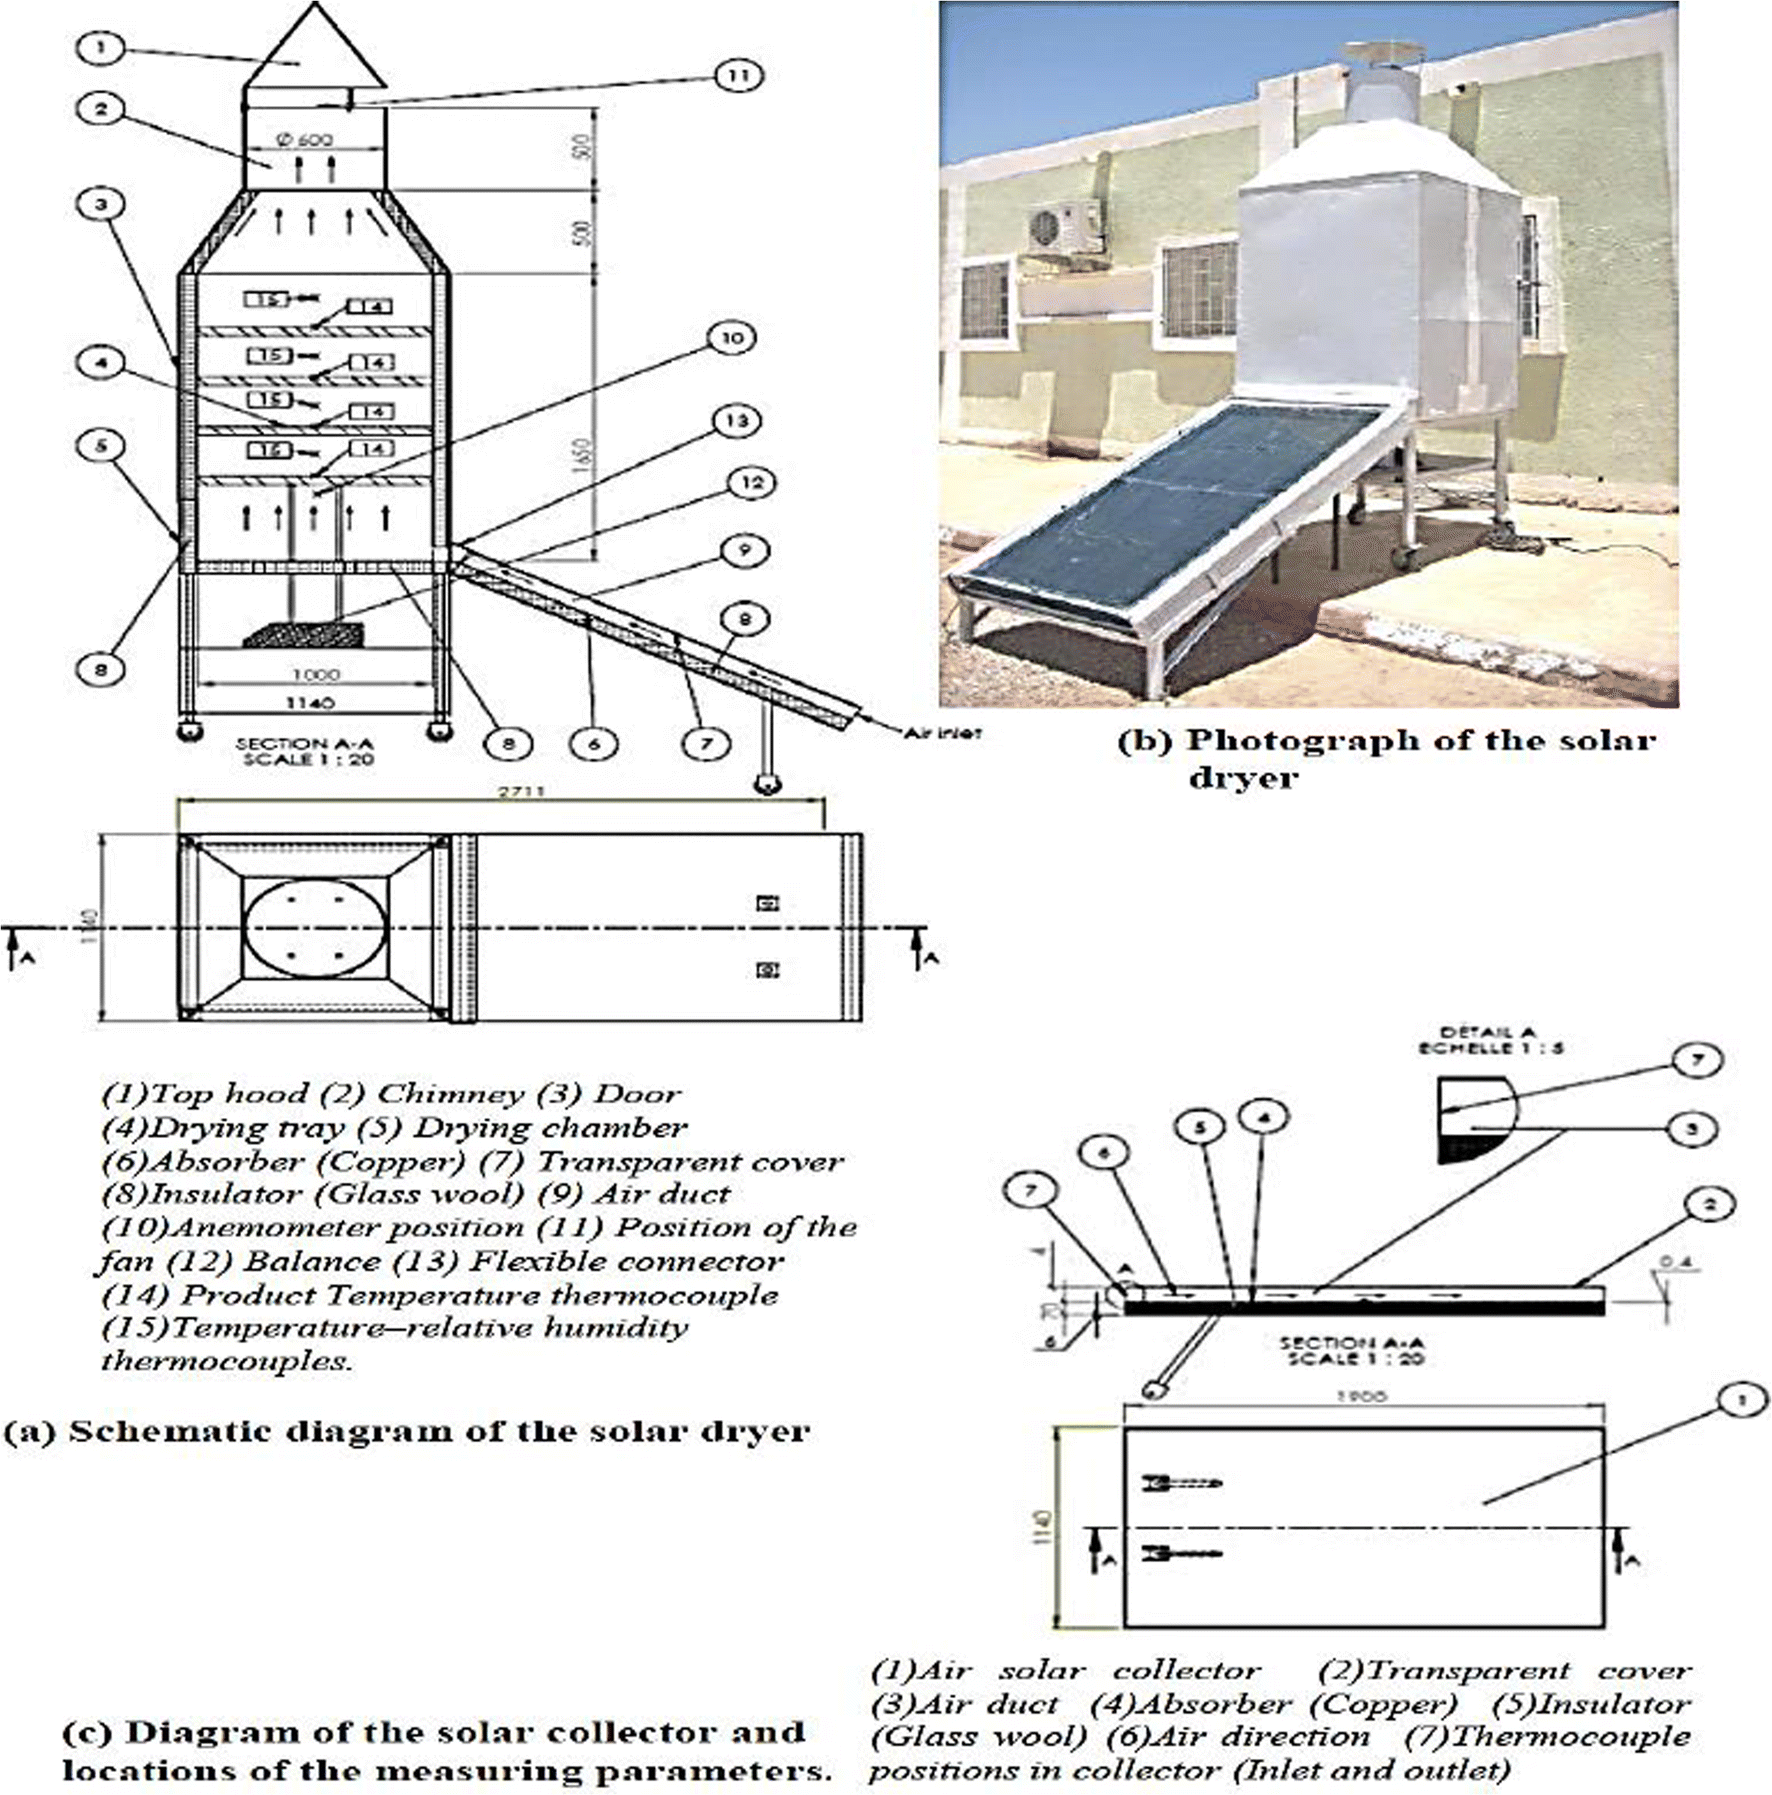 Experience Of Solar Drying In Africa Presentation Designs Wind Power Diagram Moreover 220 Range Plug Wiring 3 Wire